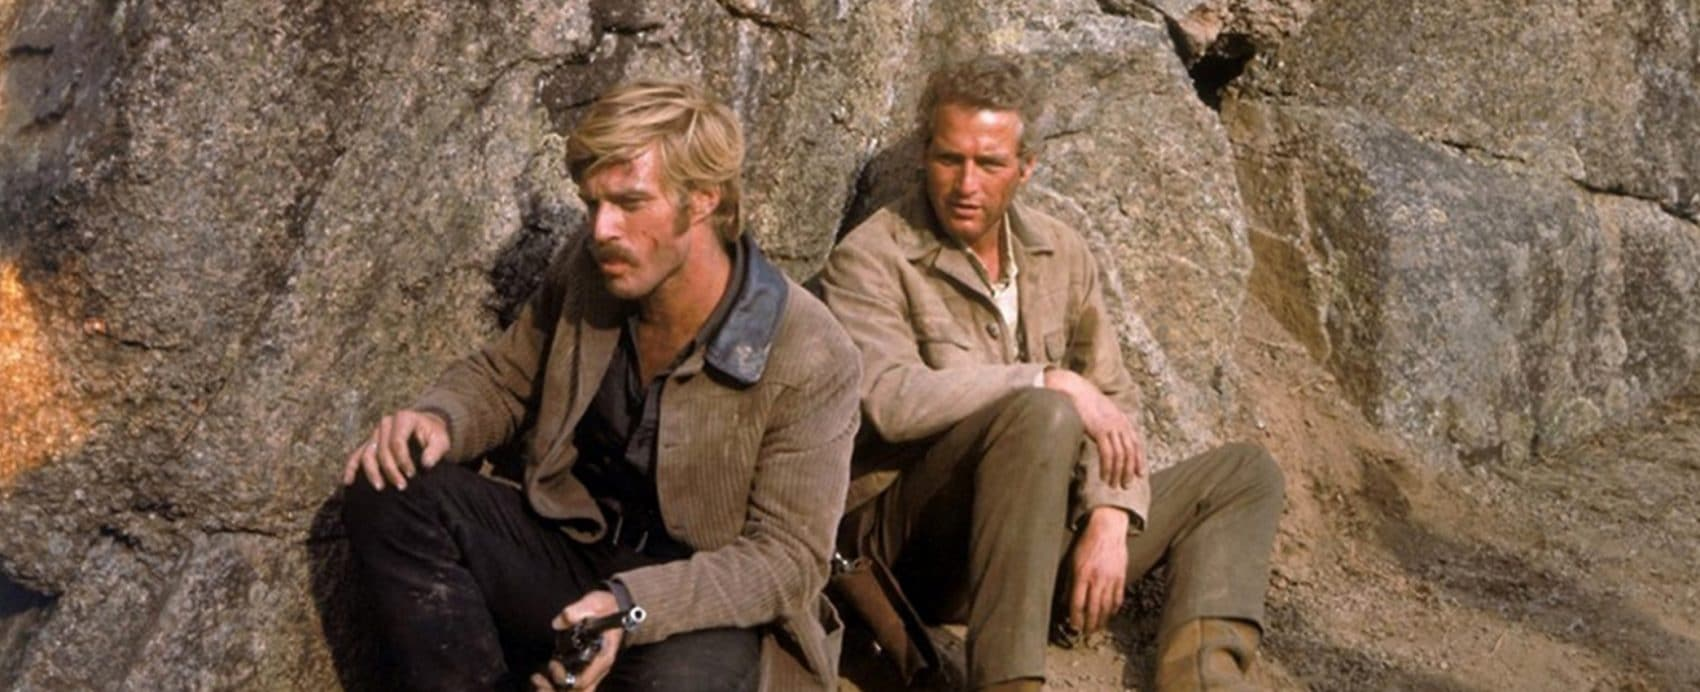 Butch Cassidy et le Kid – Critique